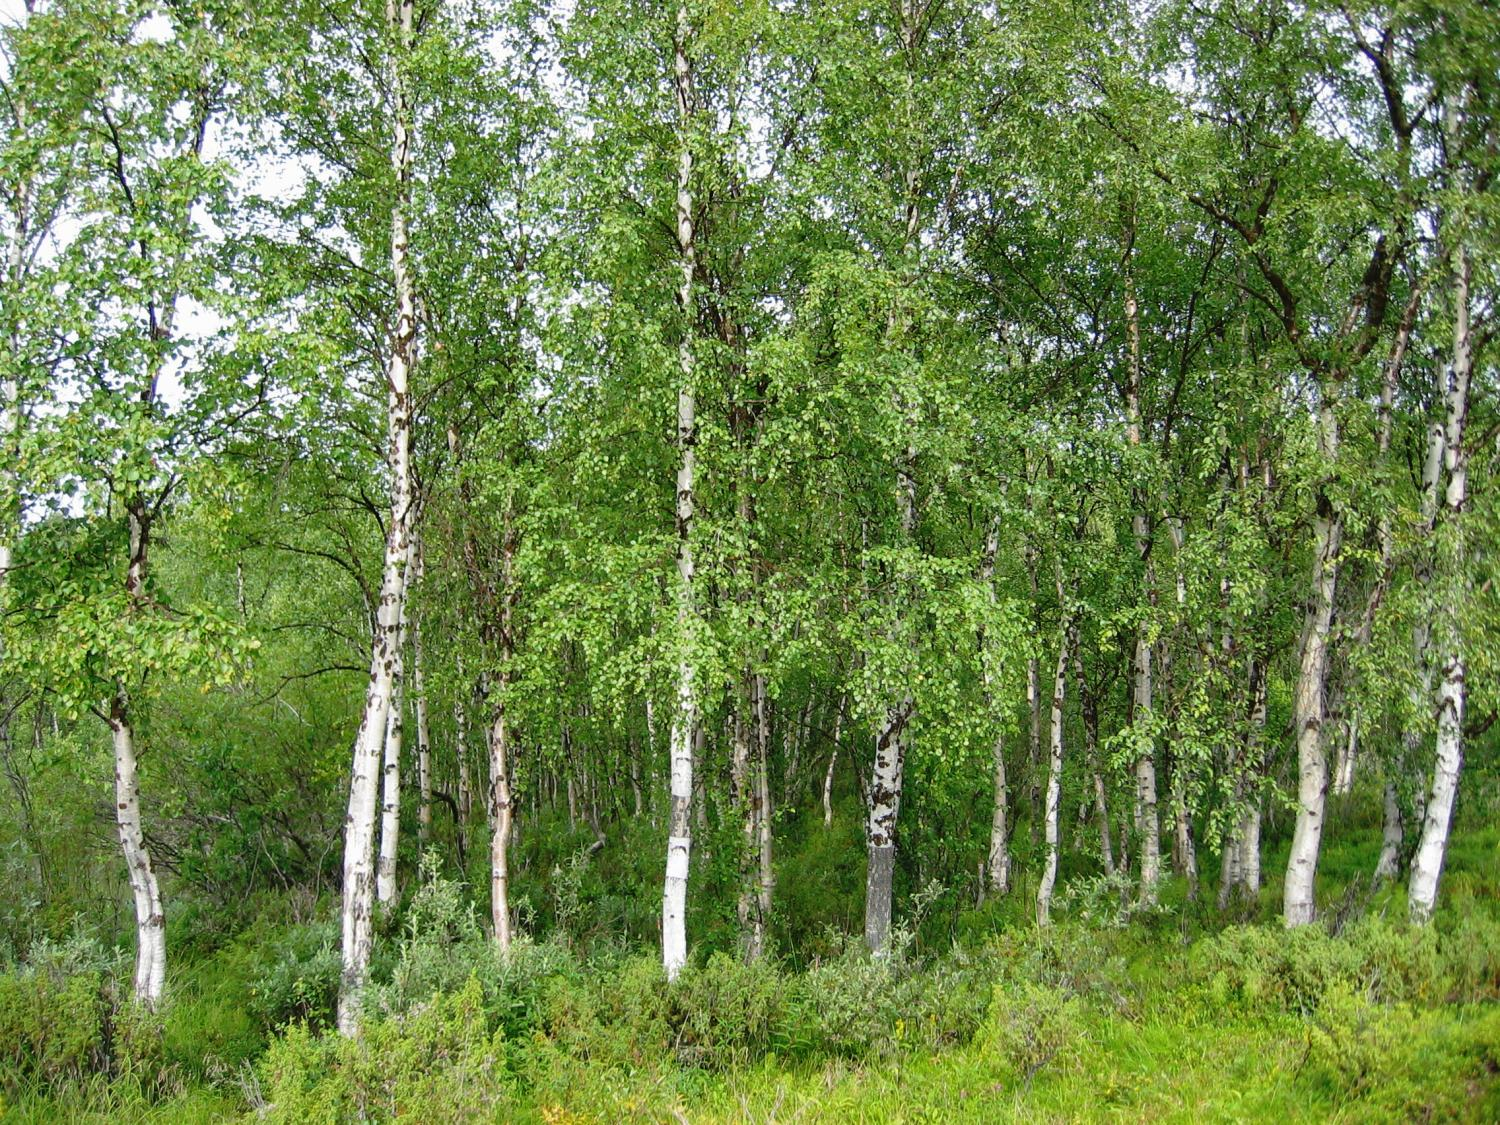 the evolutionary story of birch told through 80 genomes